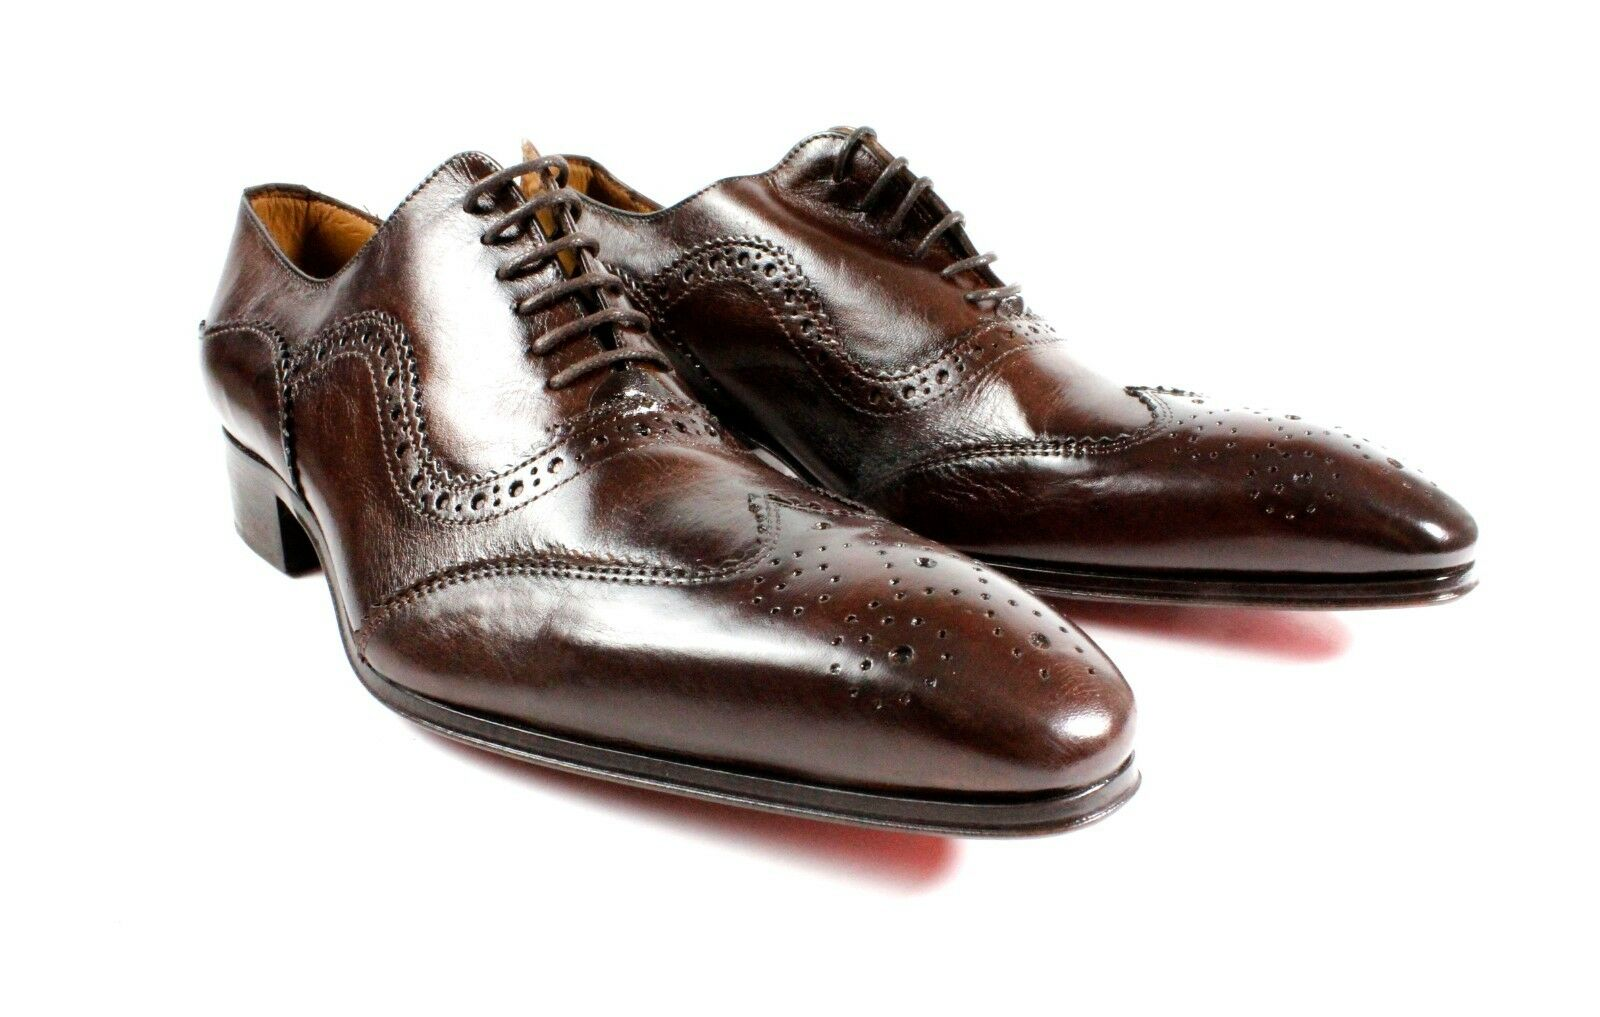 IVAN TROY Baki Brown  Handmade Men Italian Leather Dress shoes Oxford shoes